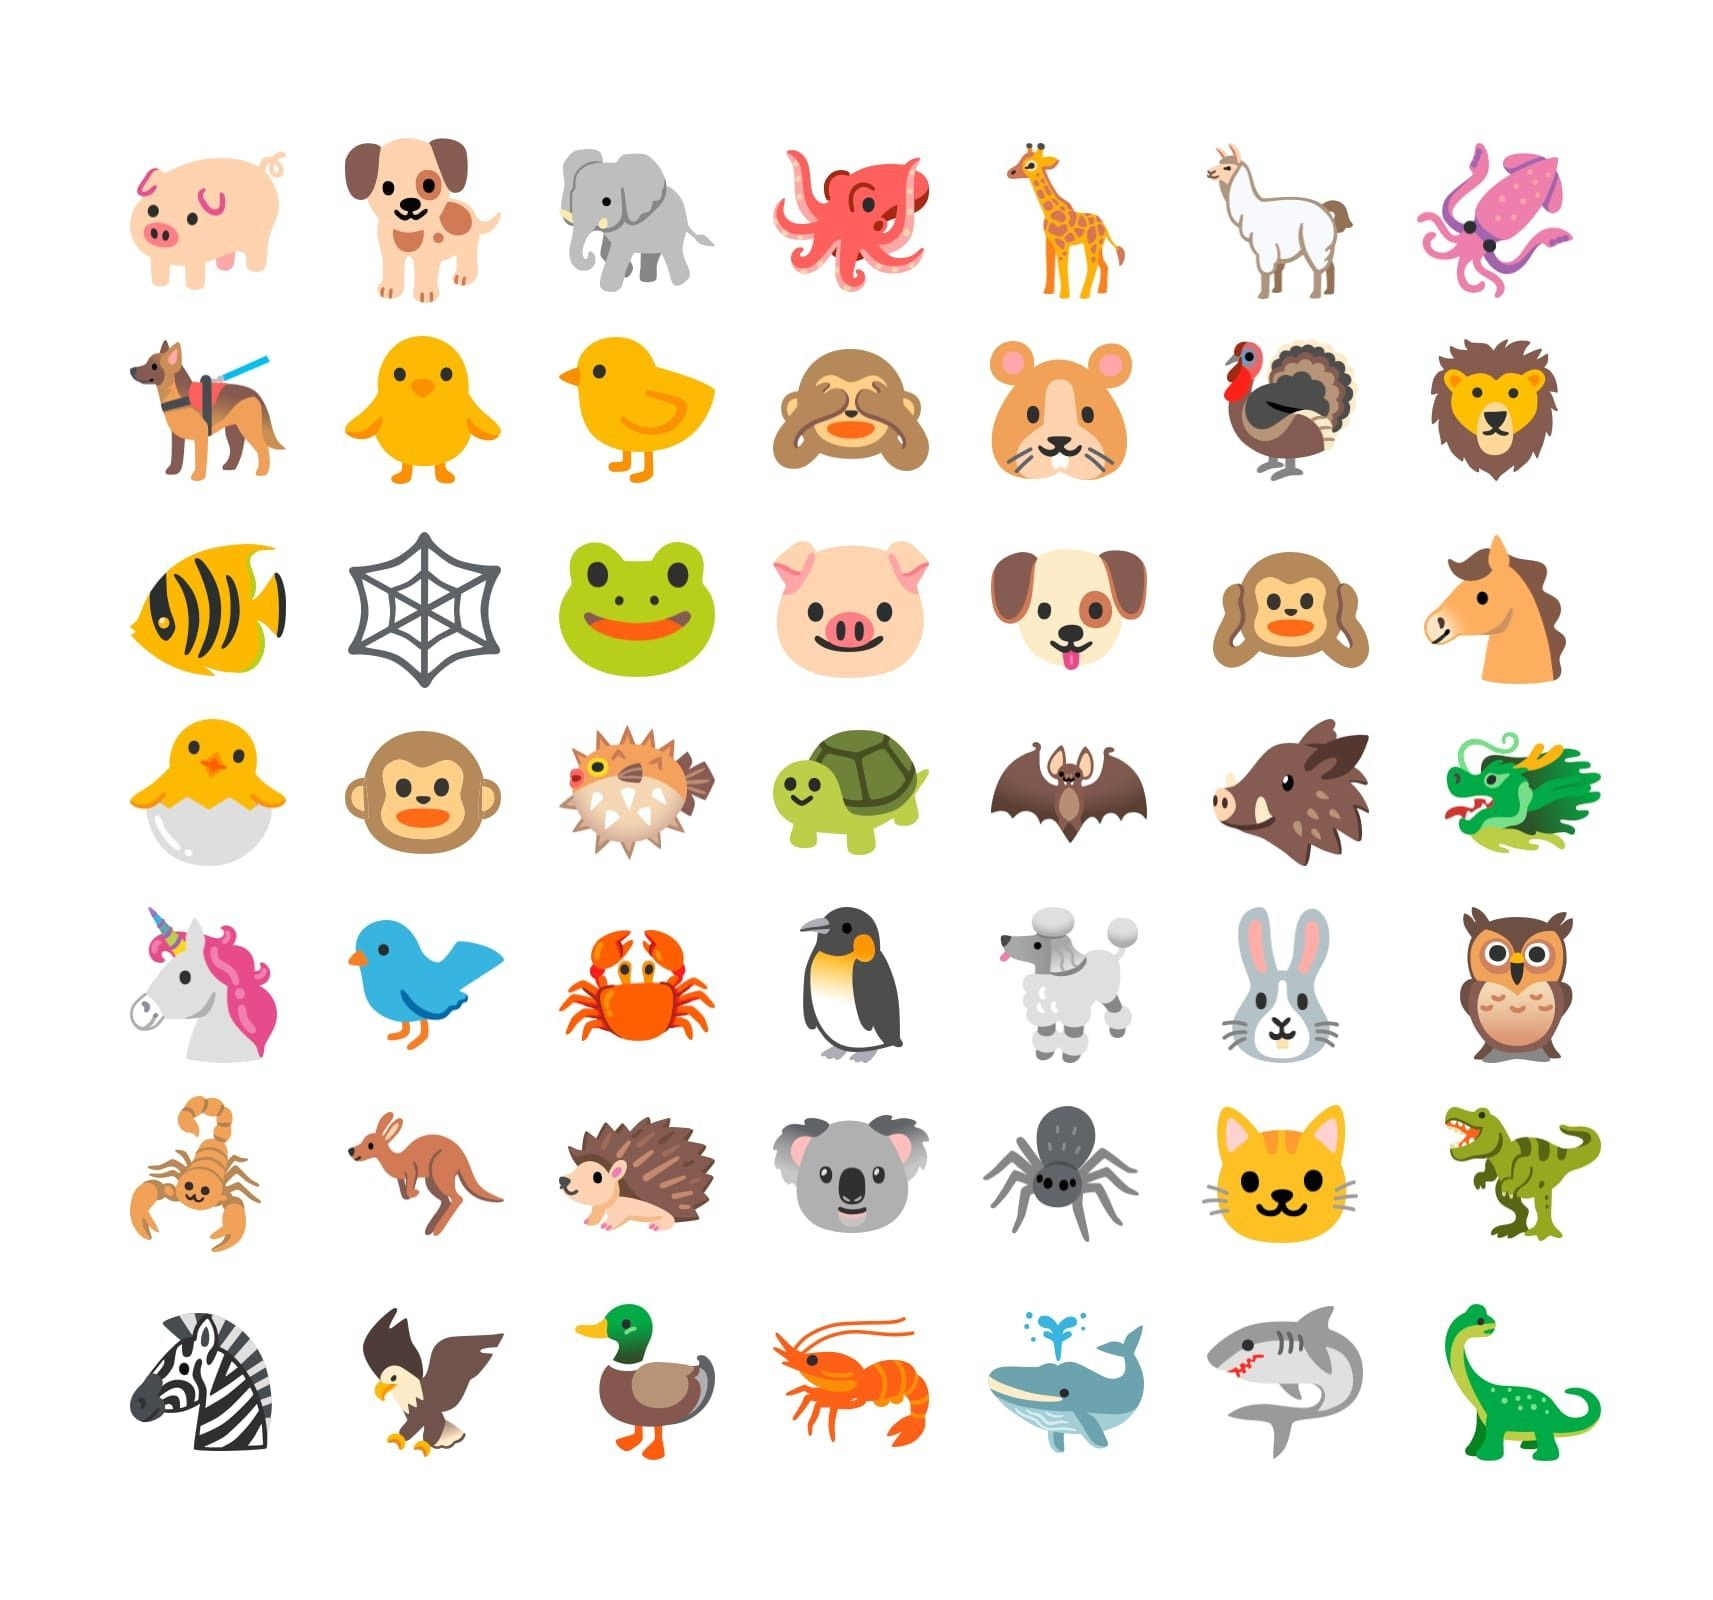 new-animal-emojis-android-11-old-classics.jpg